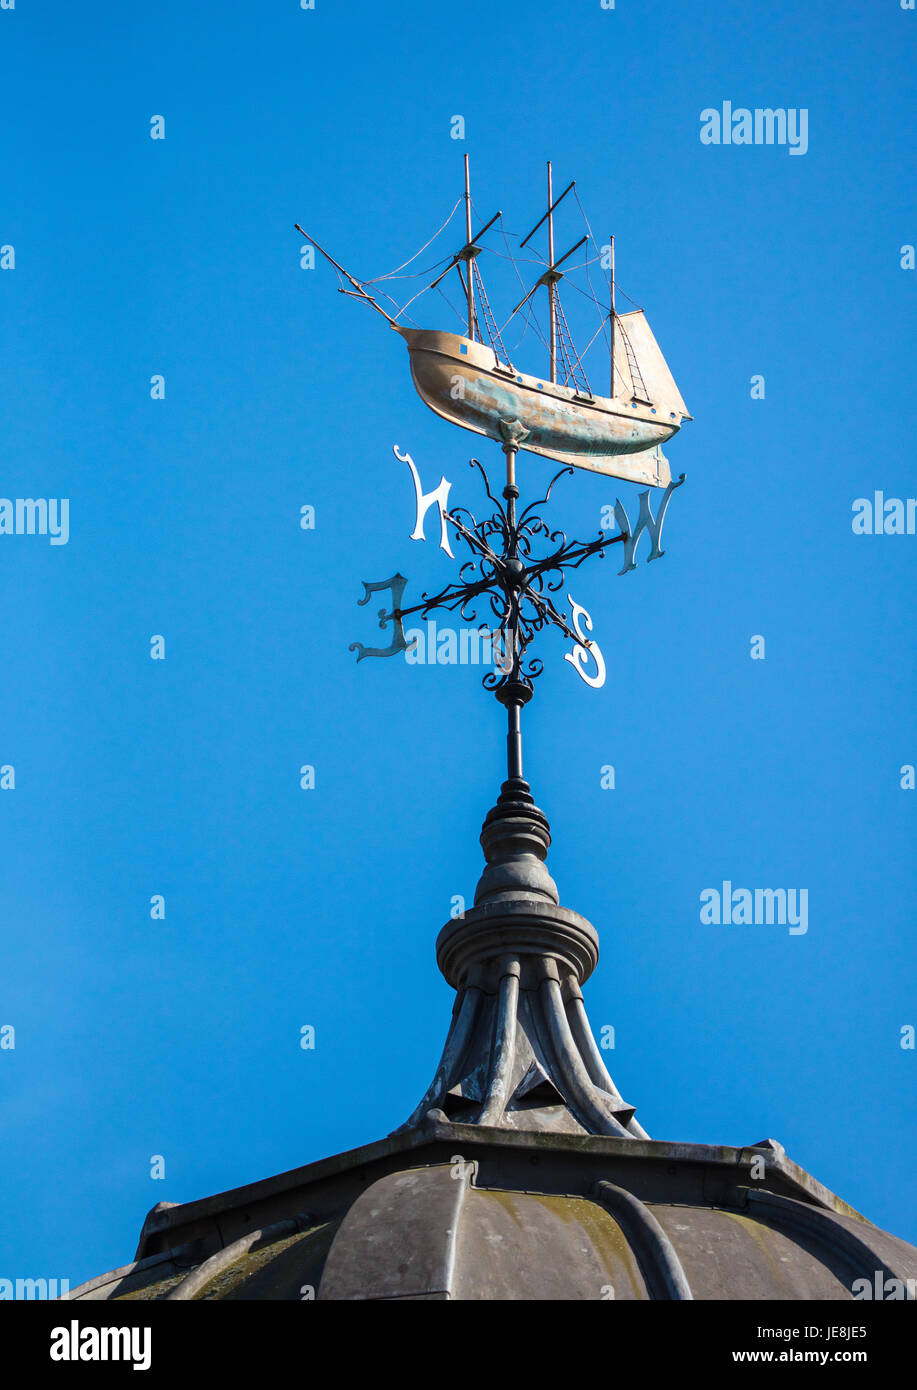 Weather vain in the form of a three masted galleon above the Watershed buildings in Bristol city centre UK - Stock Image